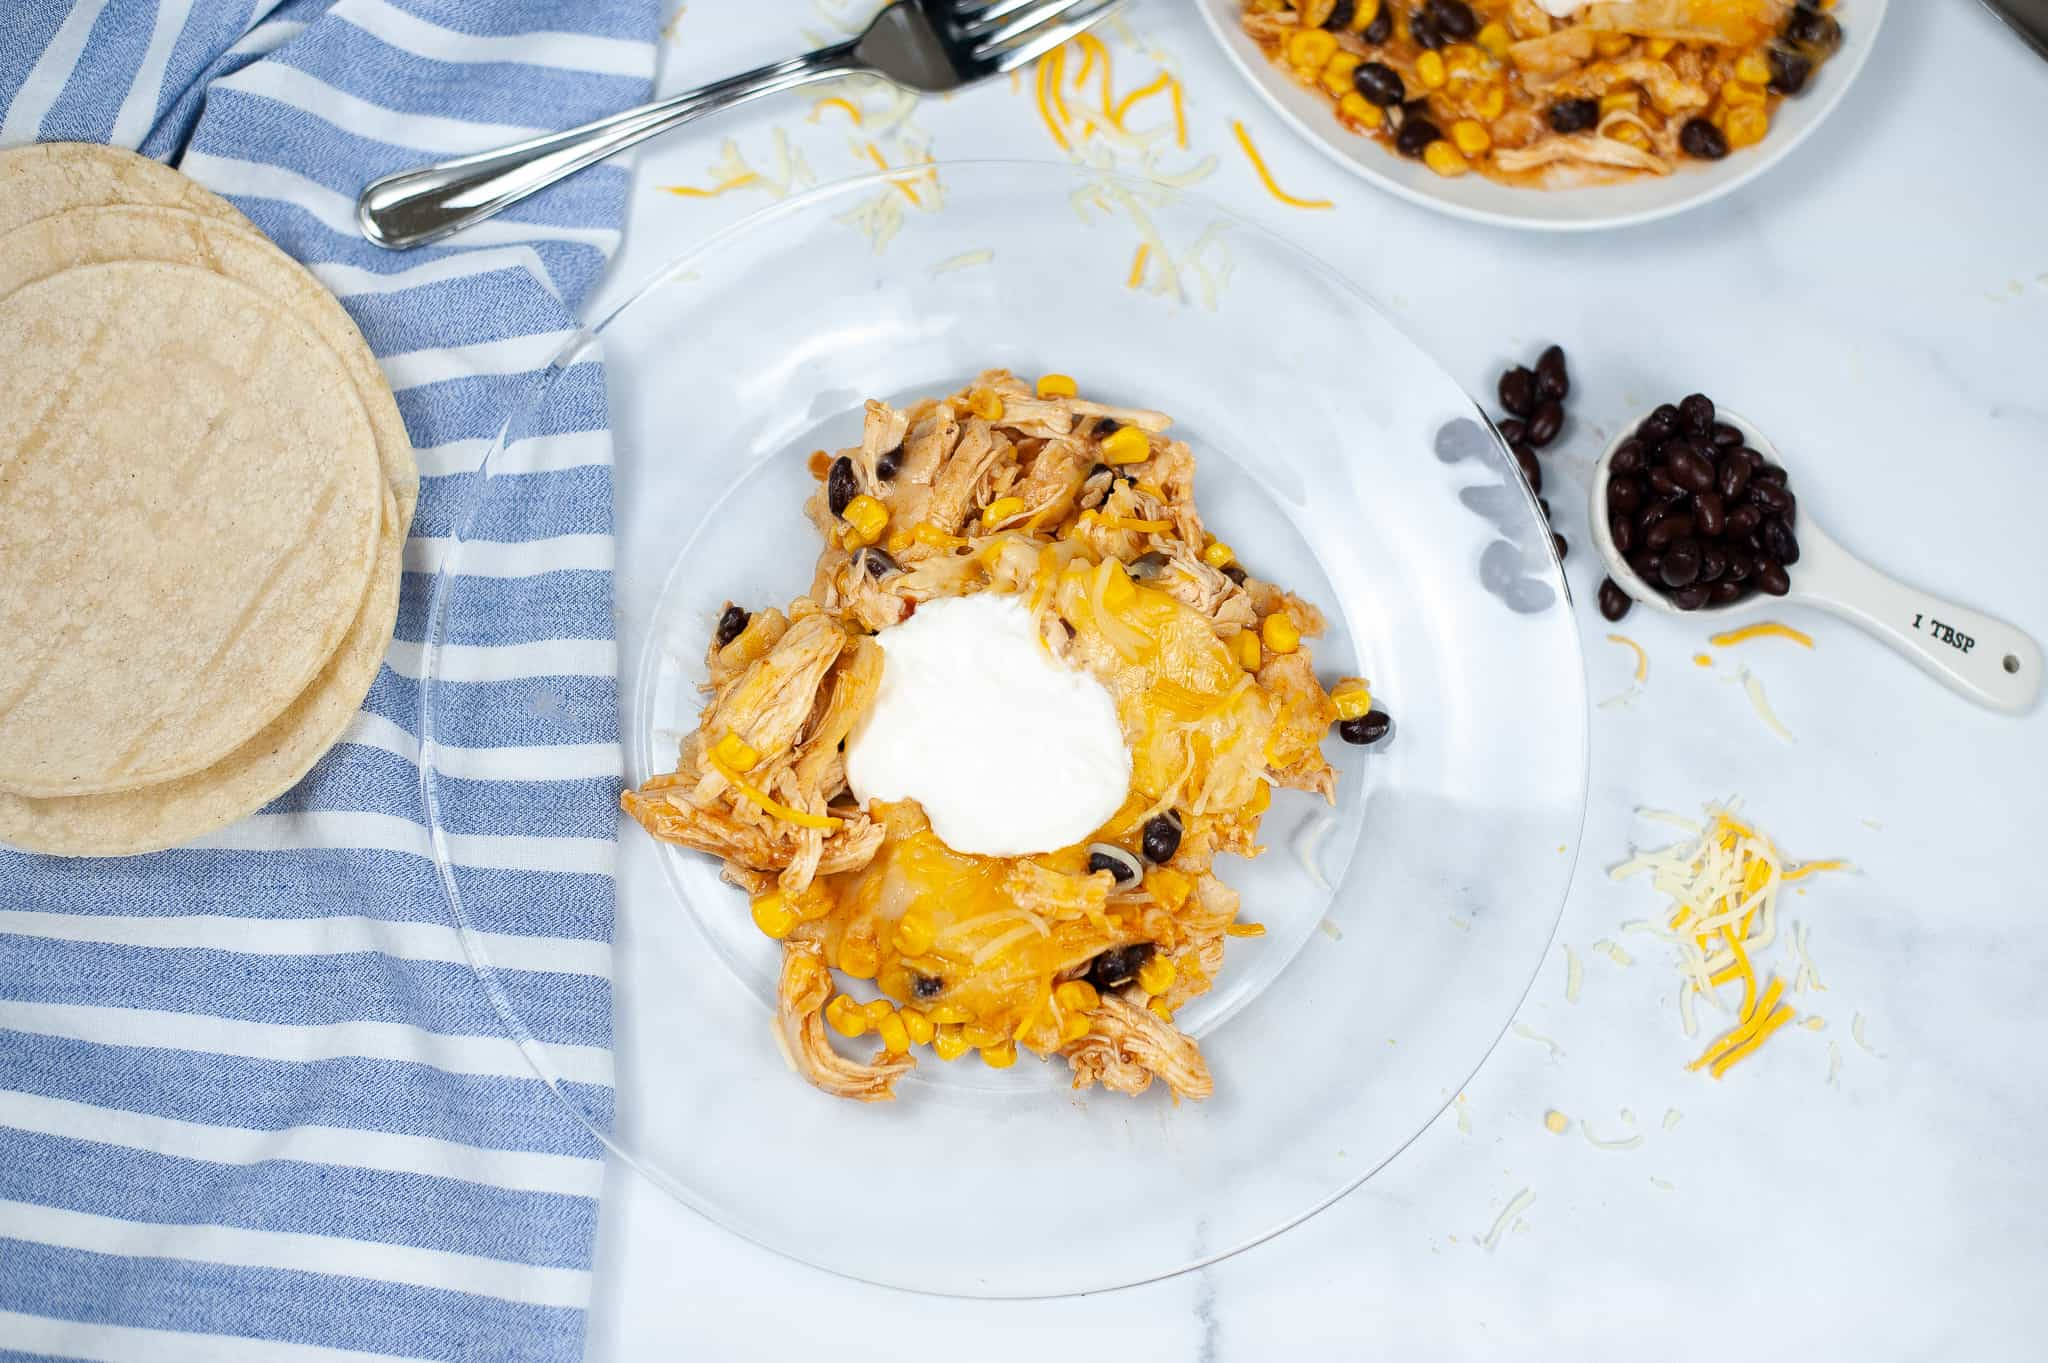 Top shot of crock pot enchiladas on a clear plate with a blue and white stripped napkin.